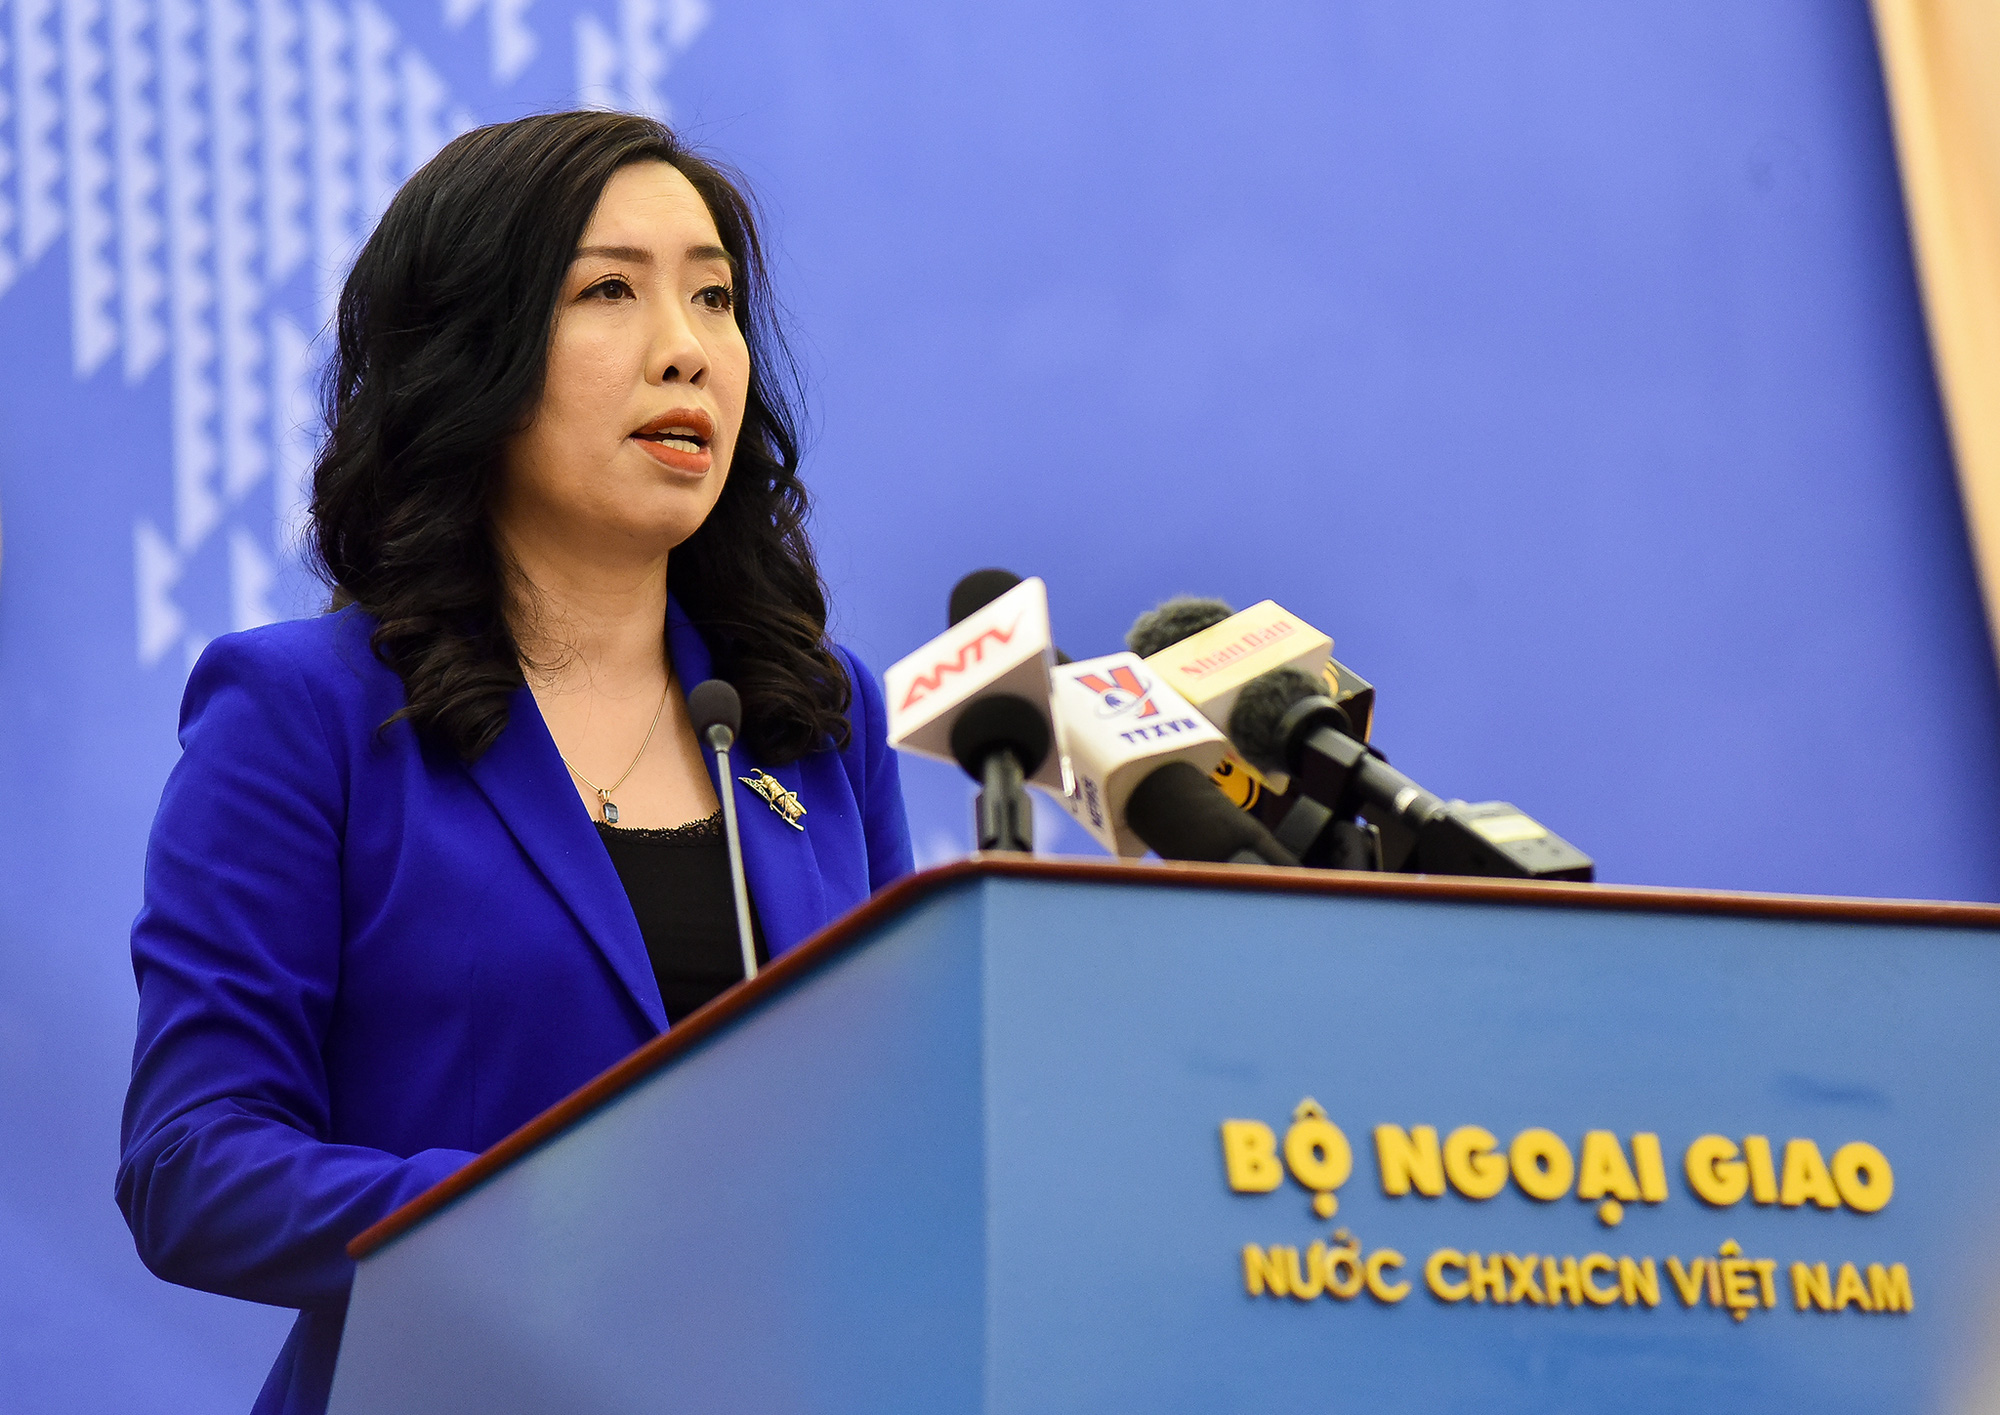 Le Thi Thu Hang, spokesperson of the Vietnamese Ministry of Foreign Affairs. Photo: Ministry of Foreign Affairs